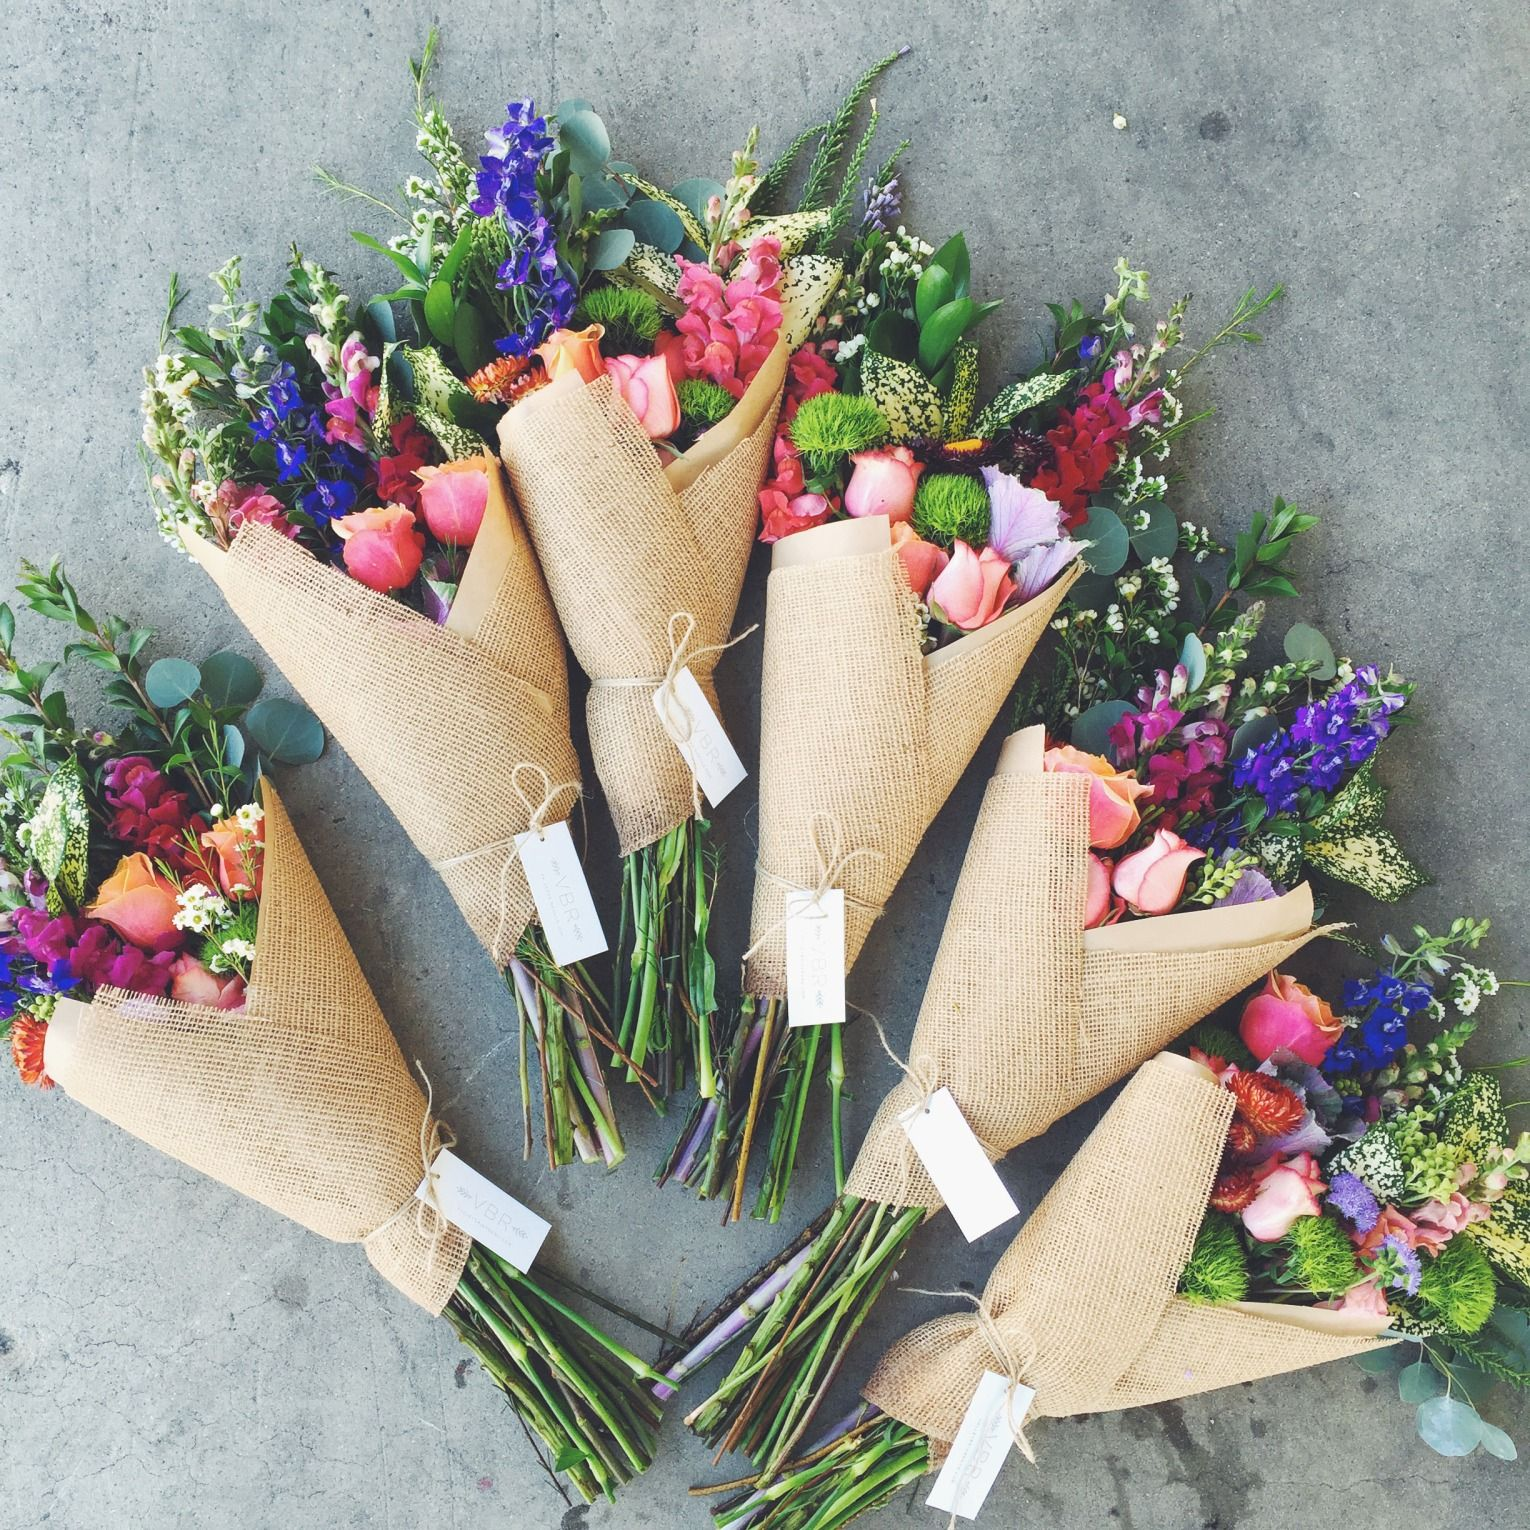 A floral wonderland valleybrink road sunday girl pinterest a floral wonderland valleybrink road how to wrap flowers boquette flowers izmirmasajfo